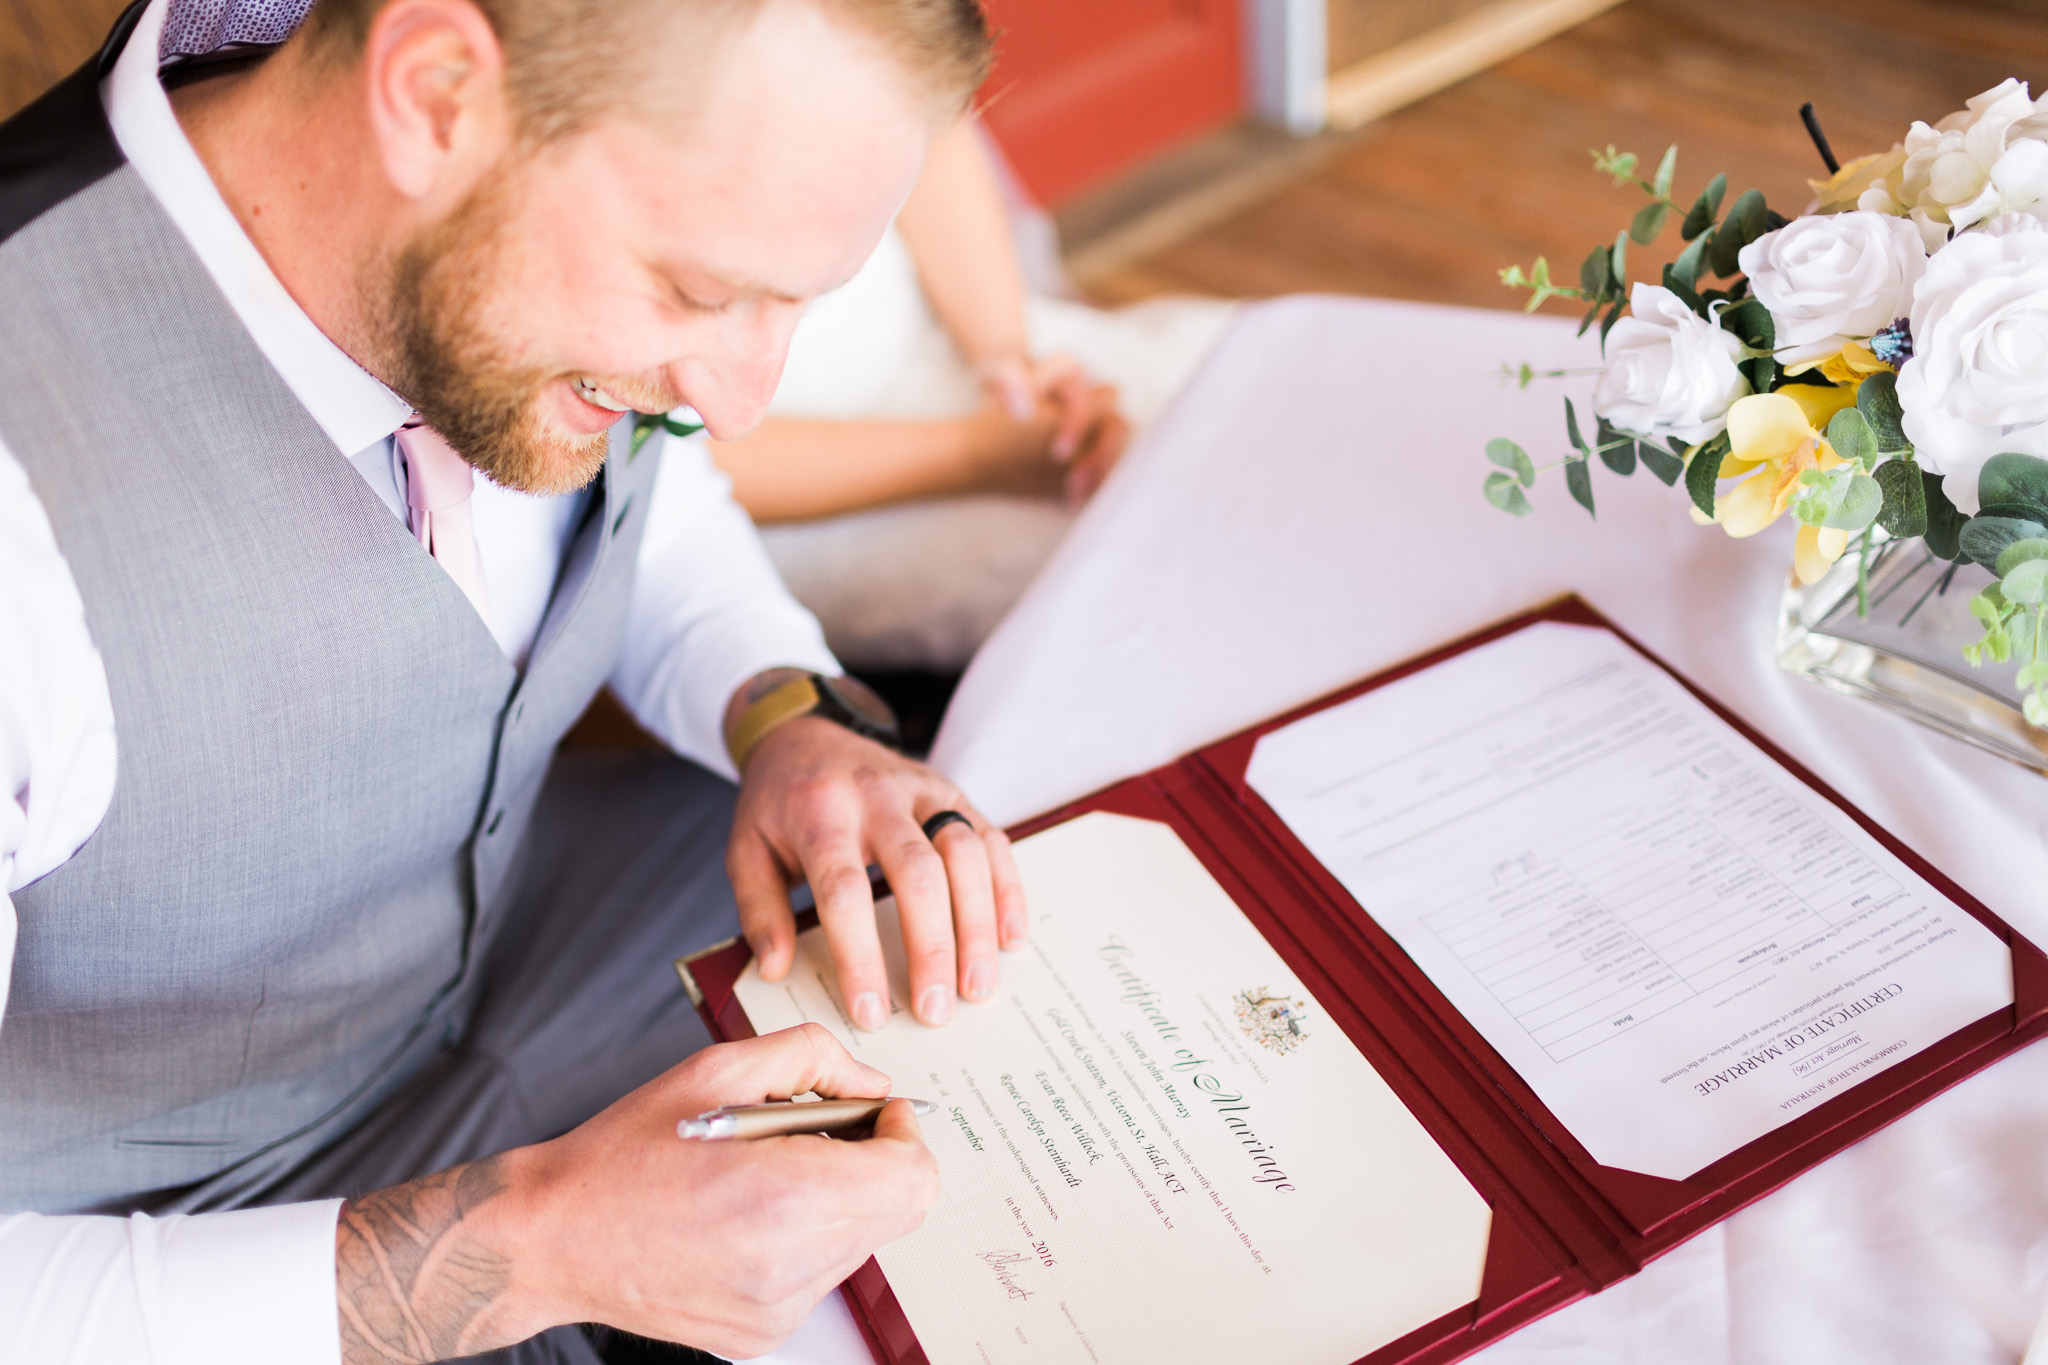 Signing the marriage certificate - Gold Creek Station Wedding